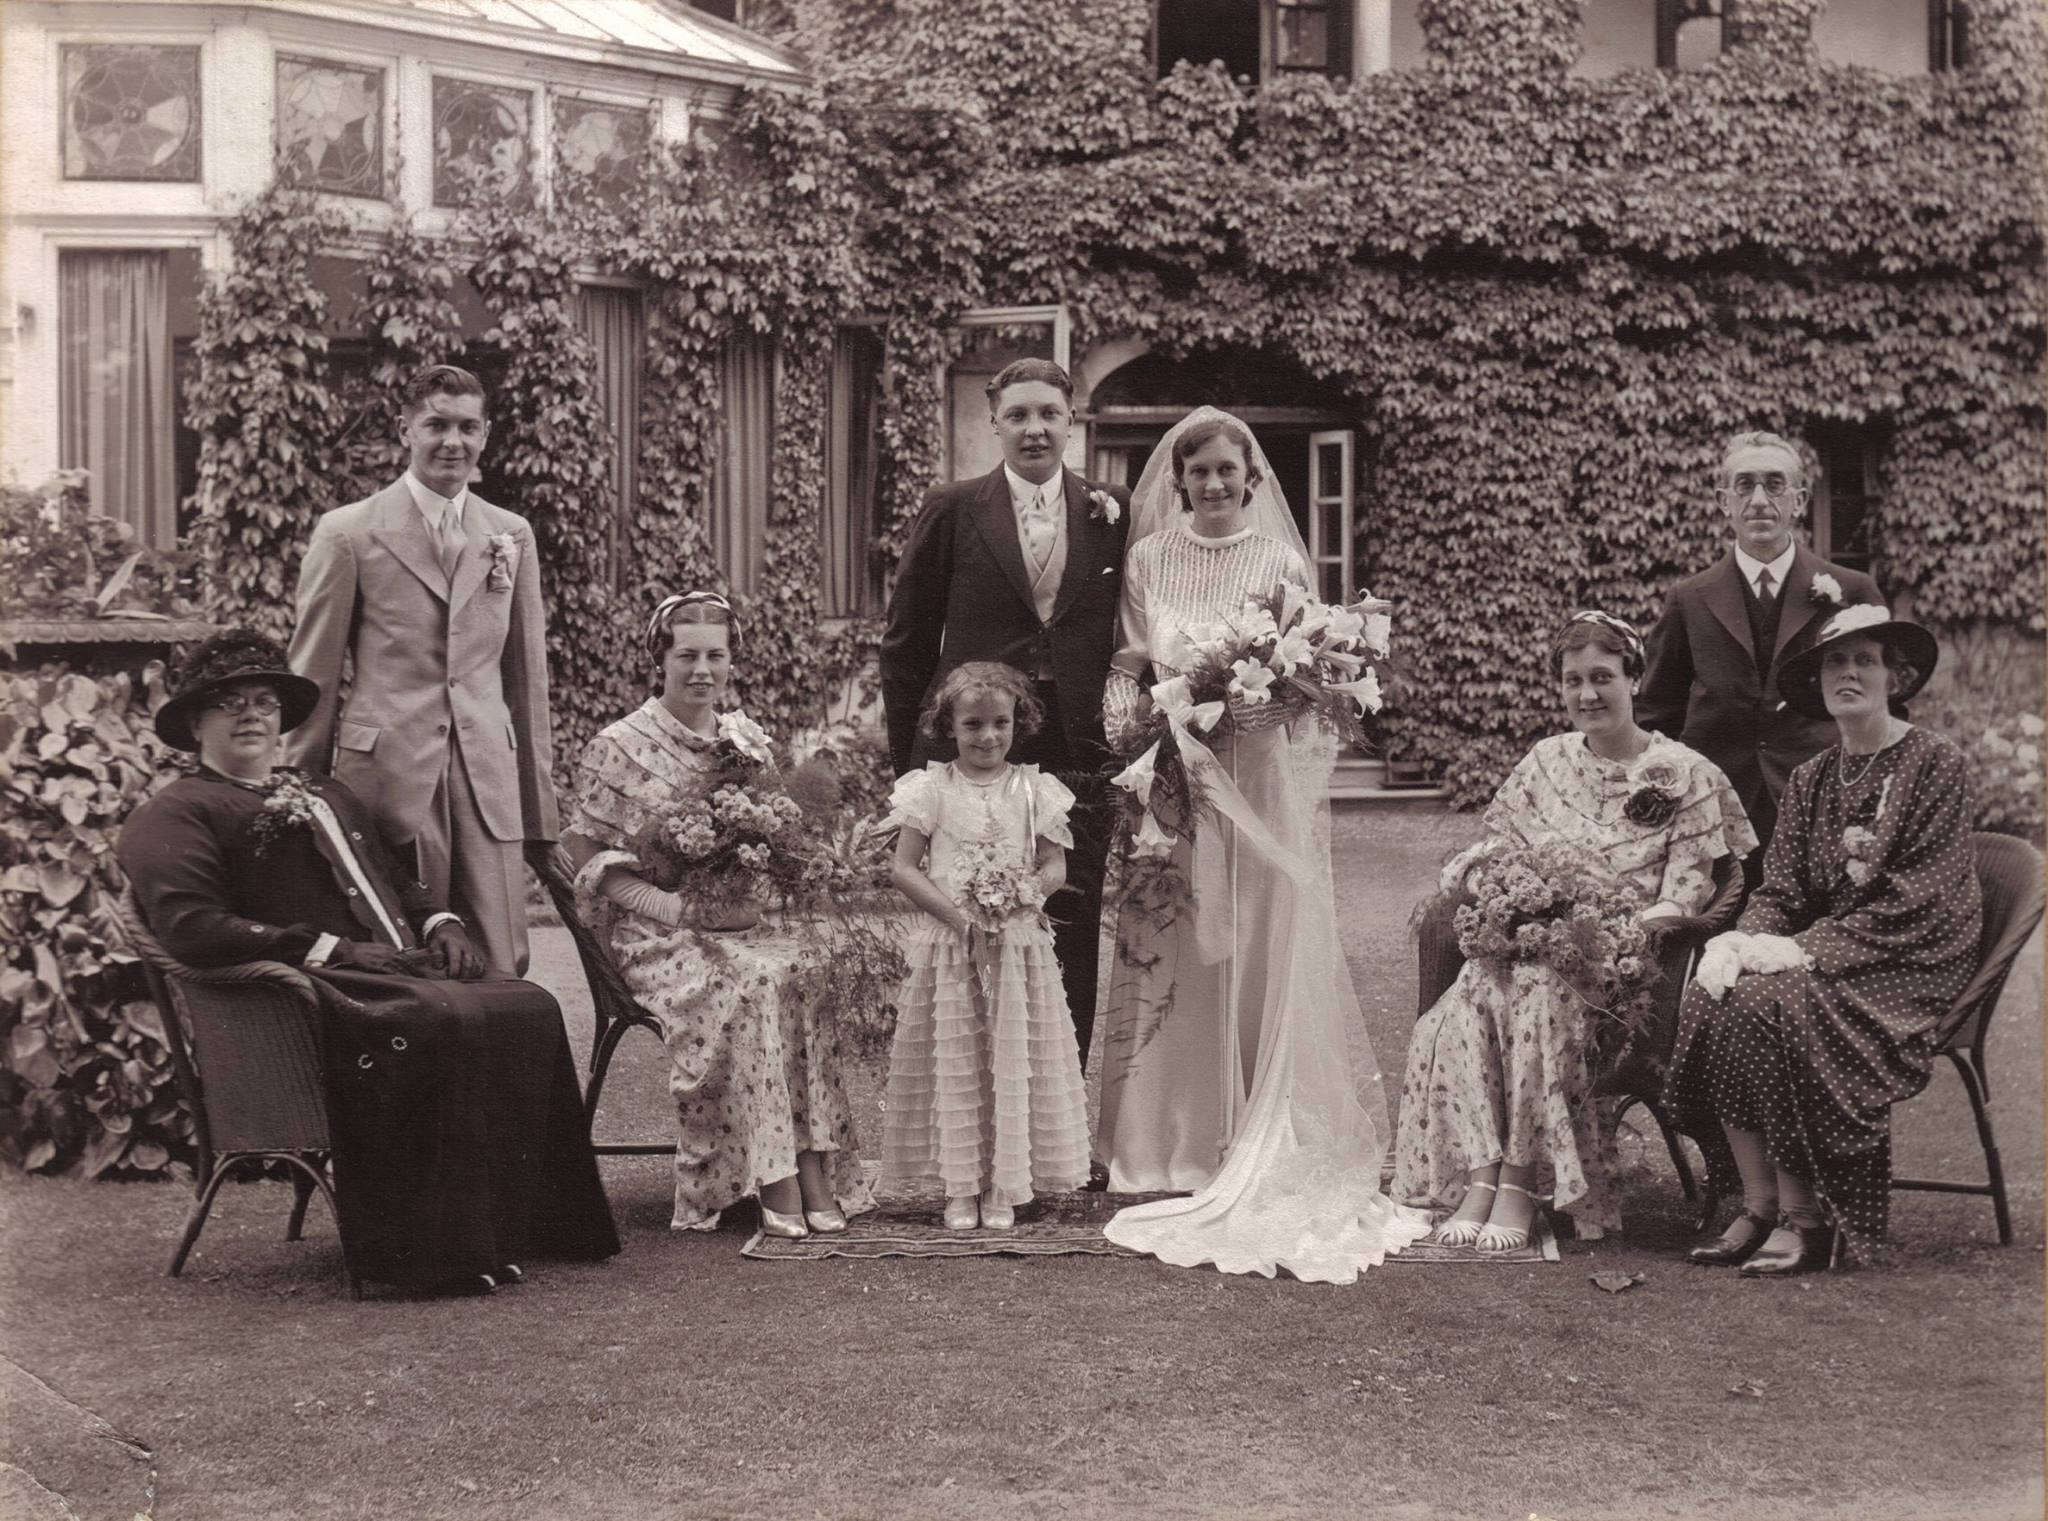 1920s wedding of Florence Knowles to Albert Peake